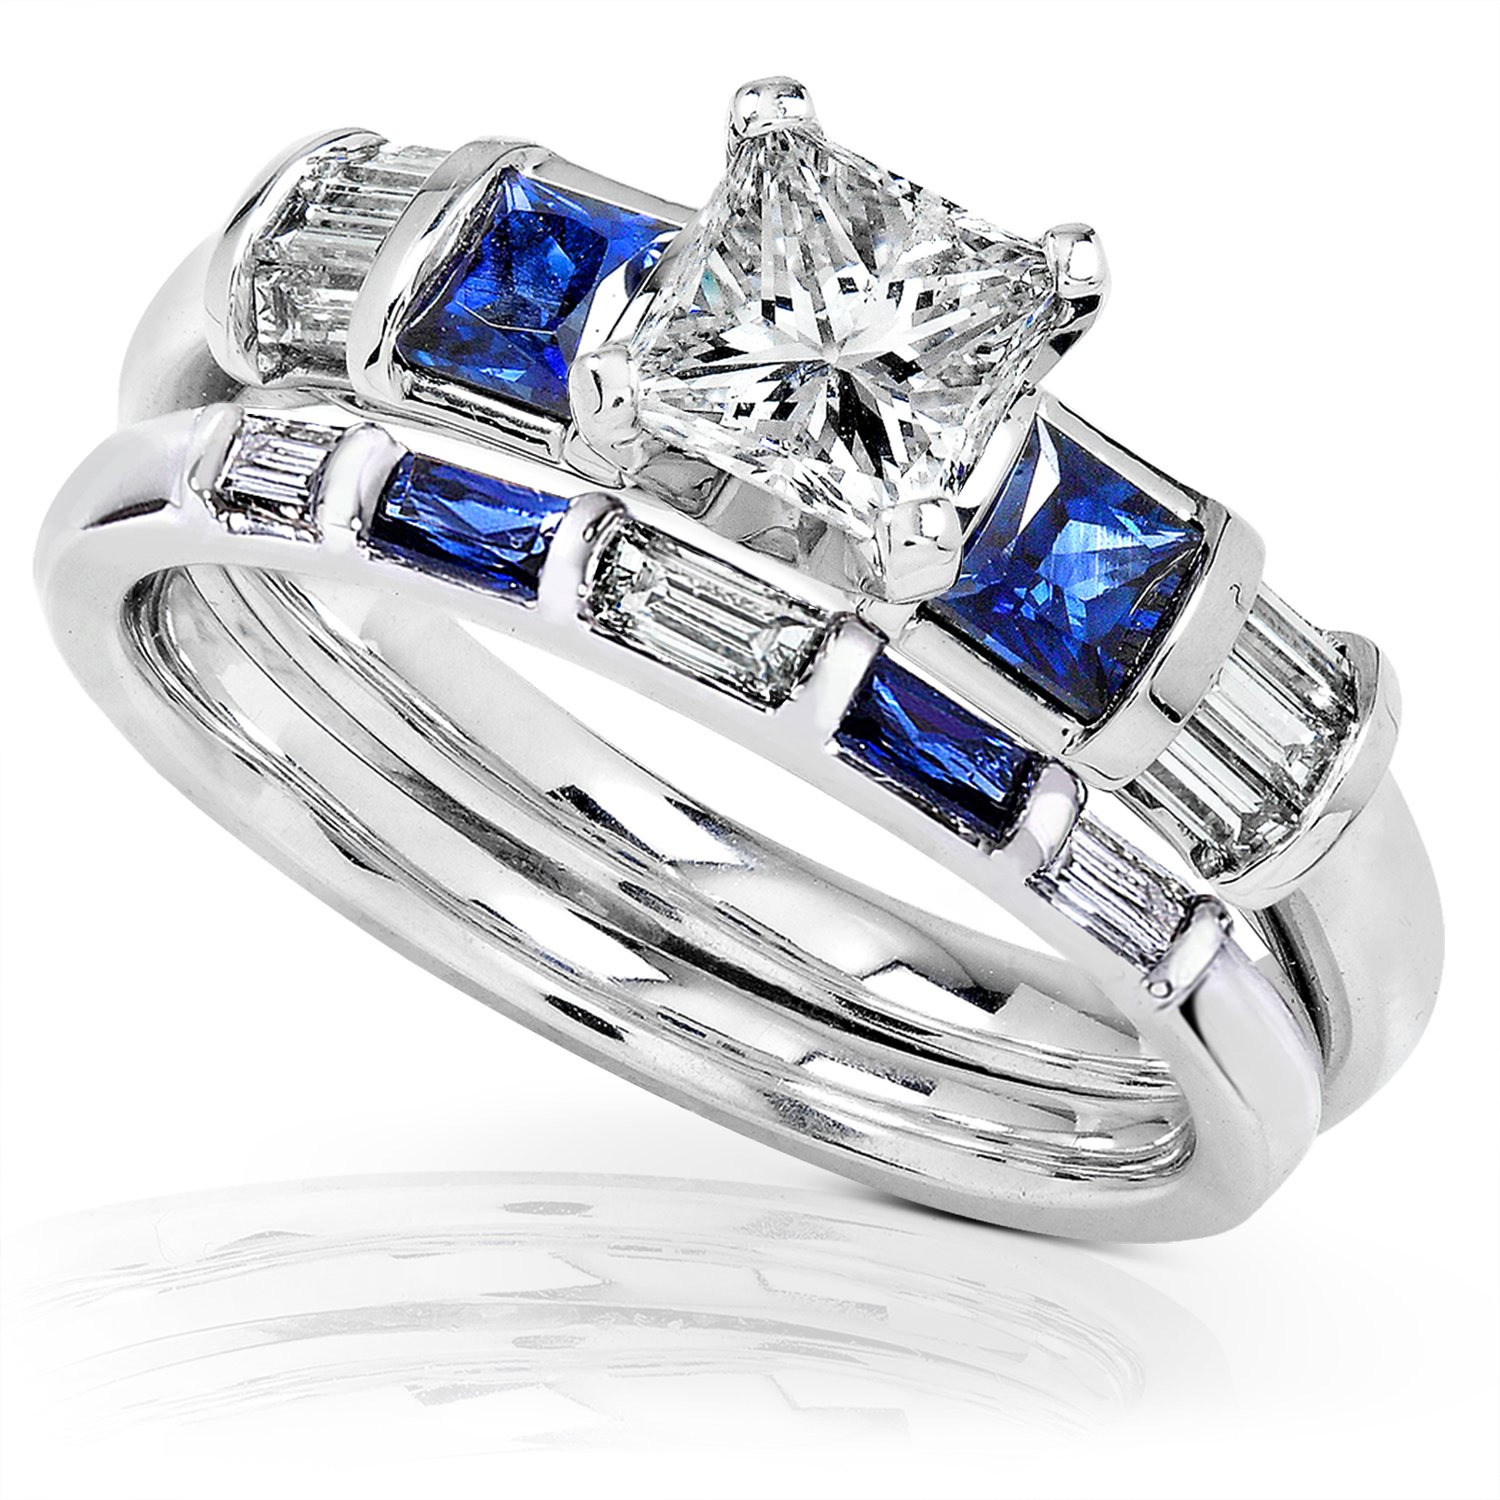 Amazoncom Blue Sapphire Diamond Wedding Rings Set 1 12 Carat